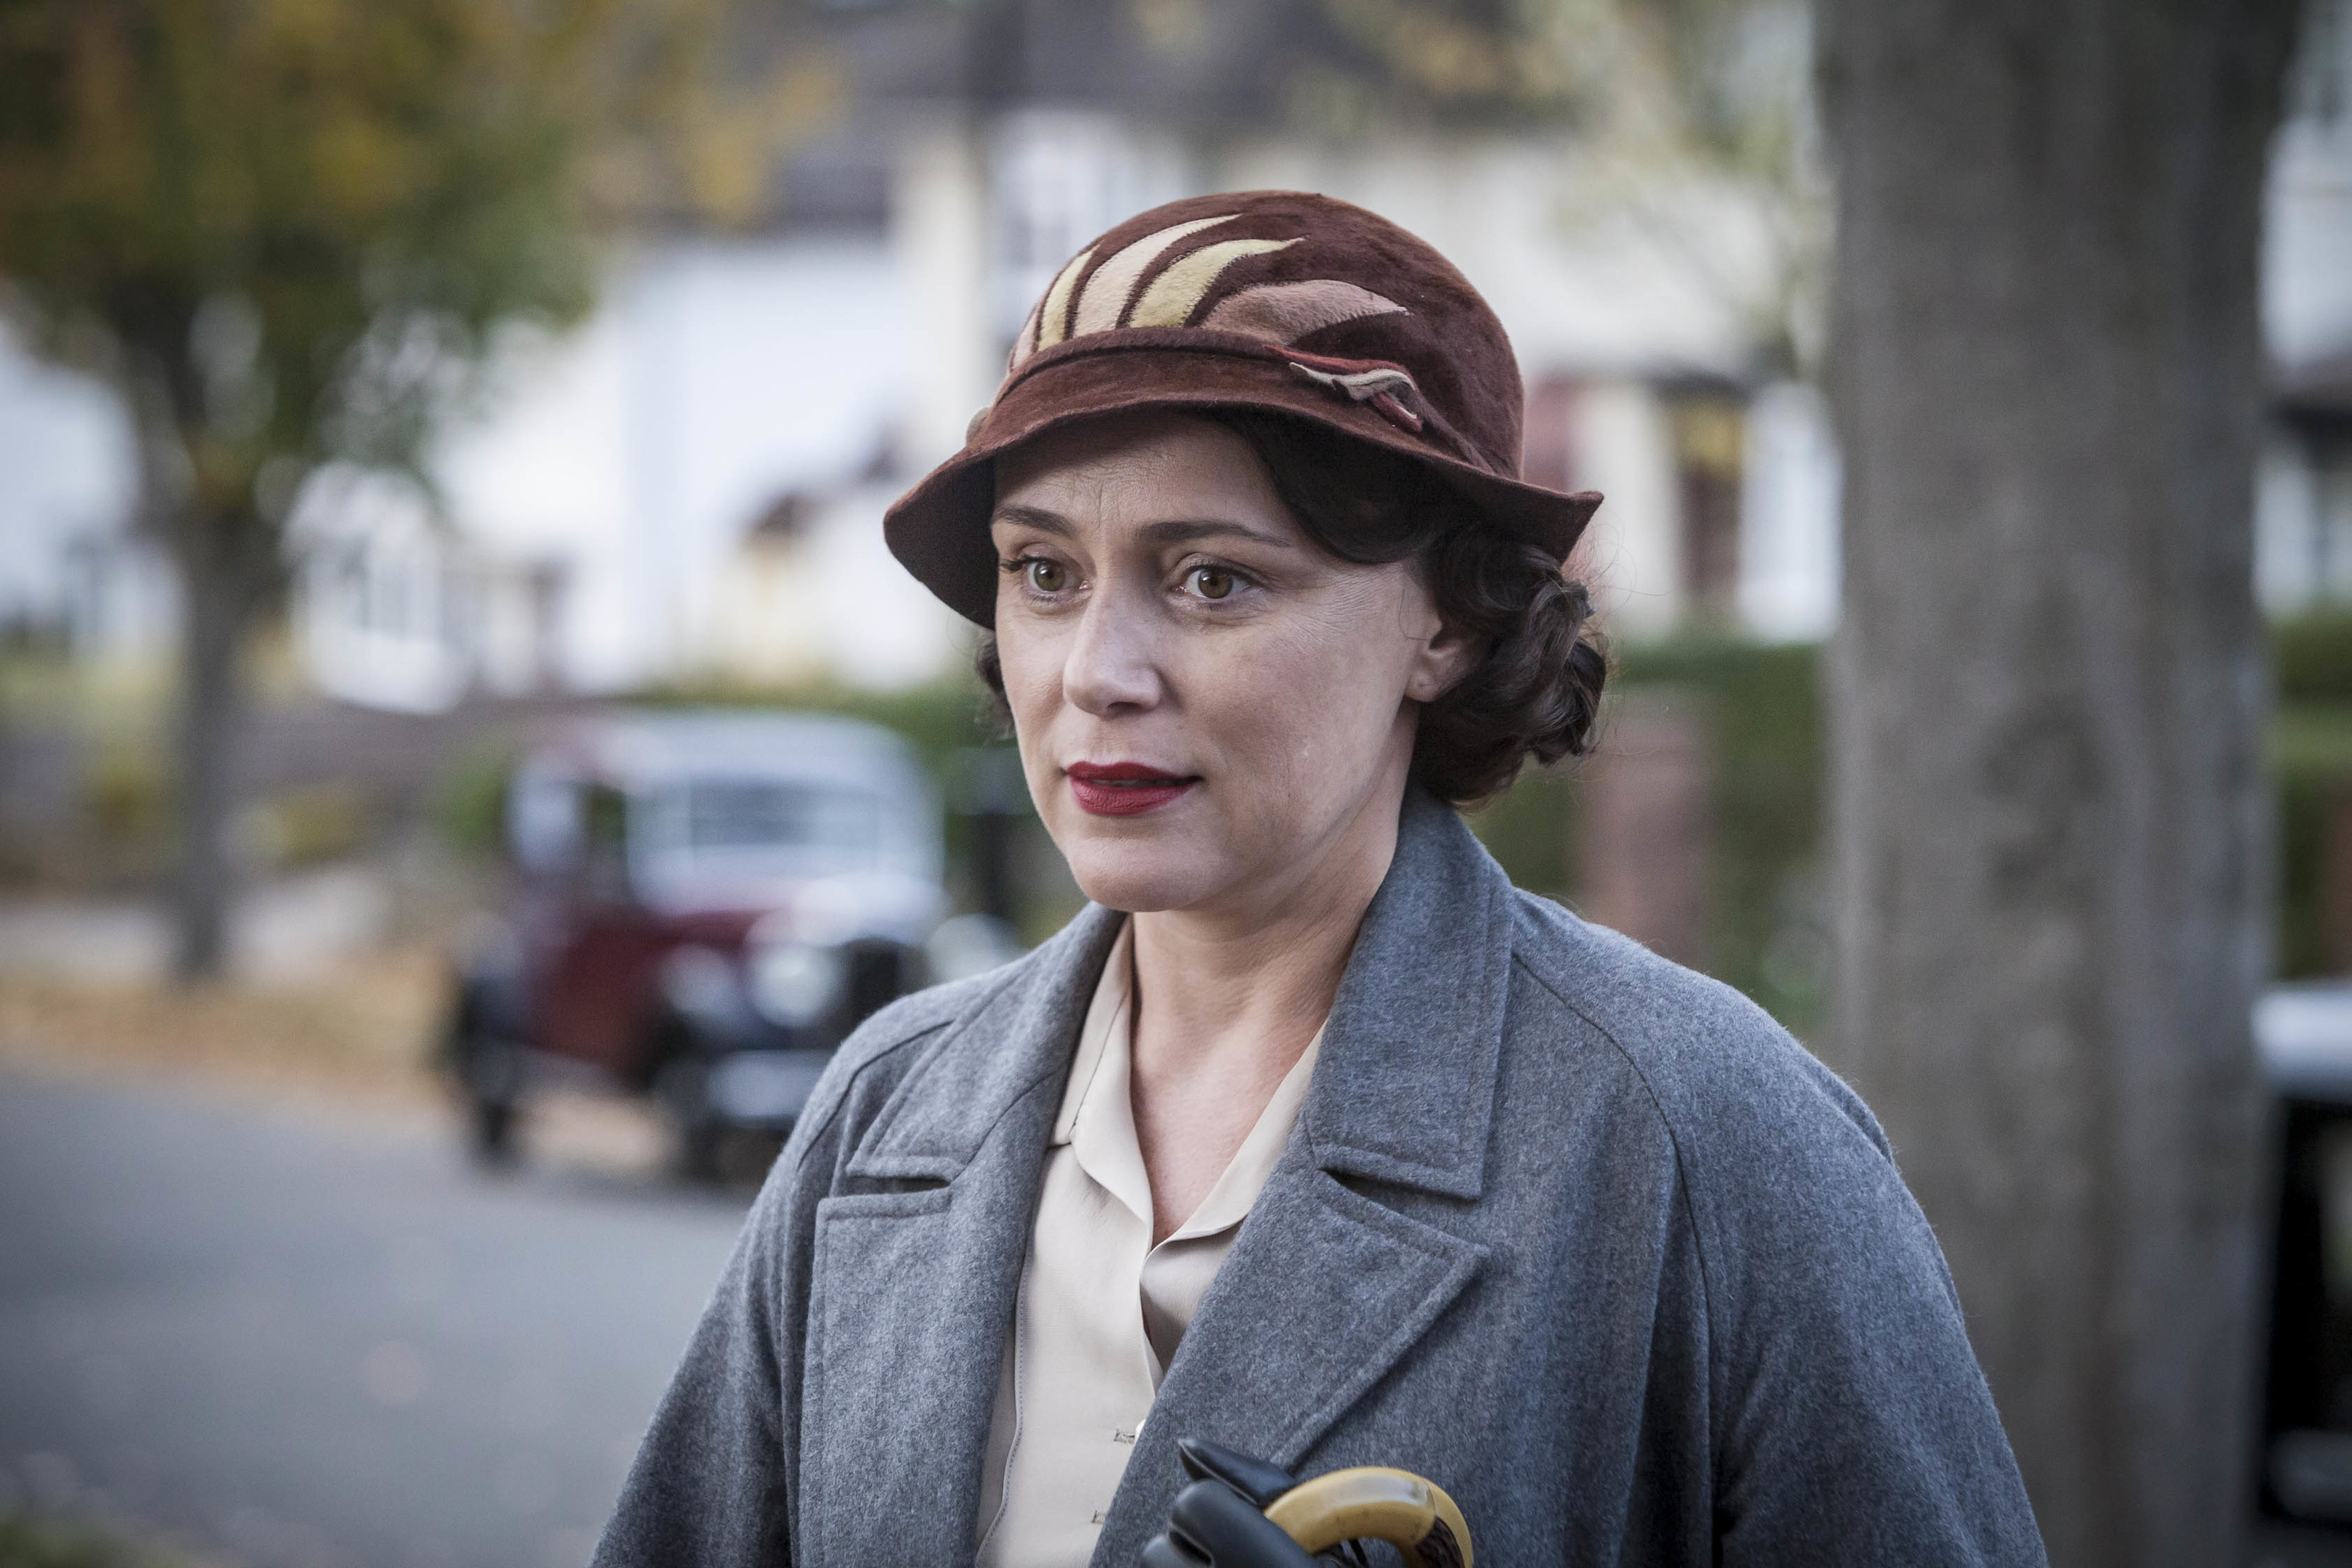 Keeley Hawes as Louisa Durrell (ITV)